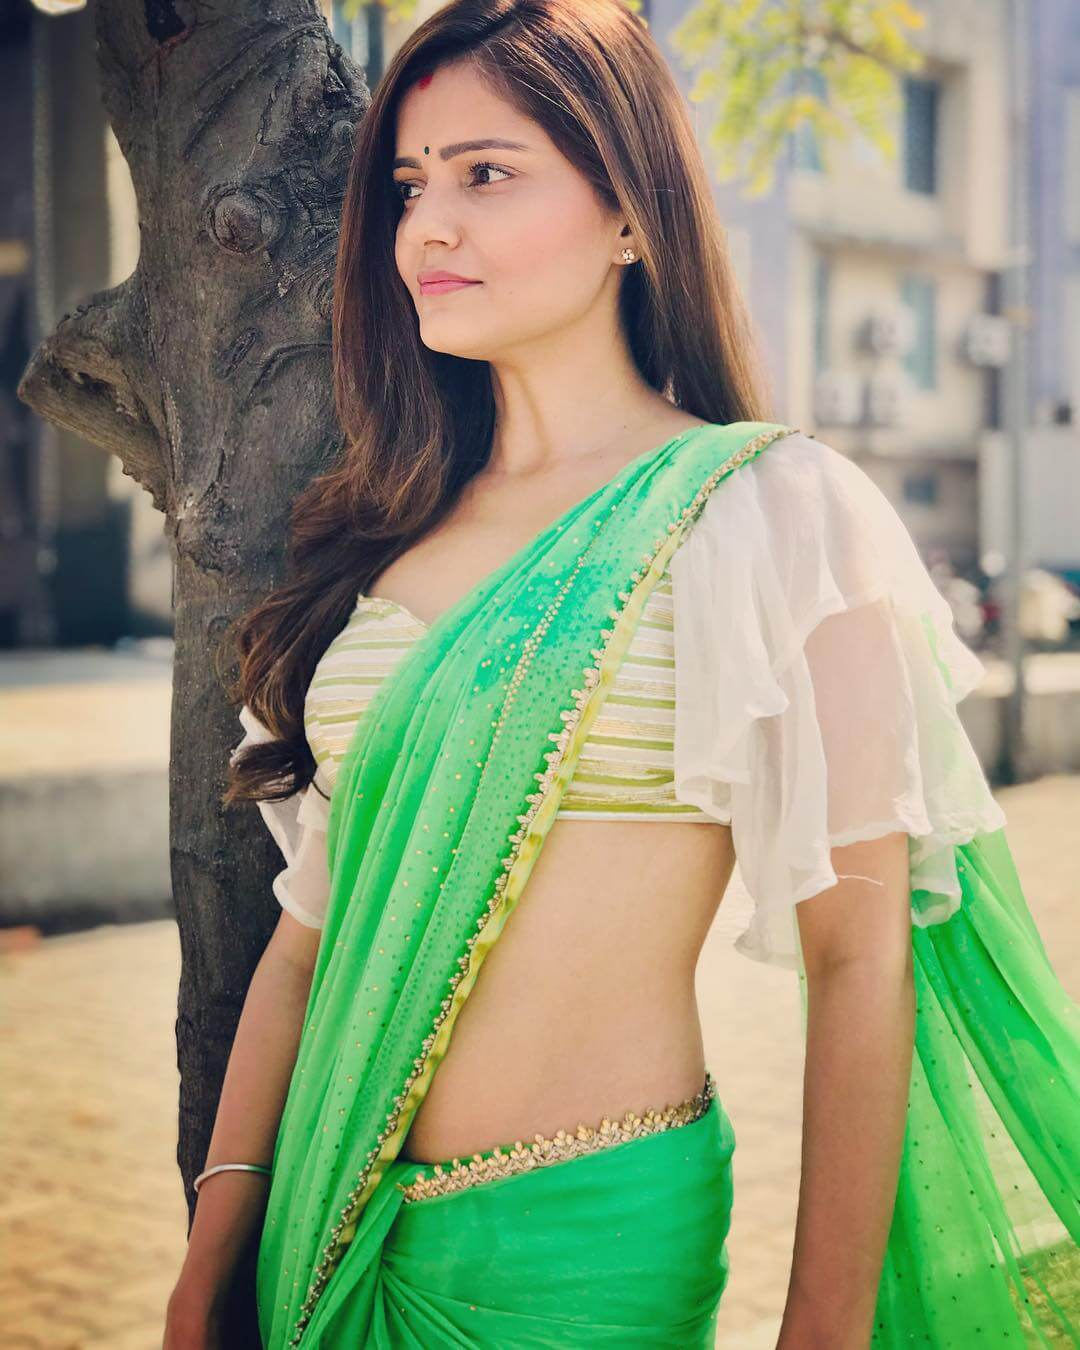 Bewitching Butterfly Sleeves Saree Blouse Designs by Rubina Dilaik